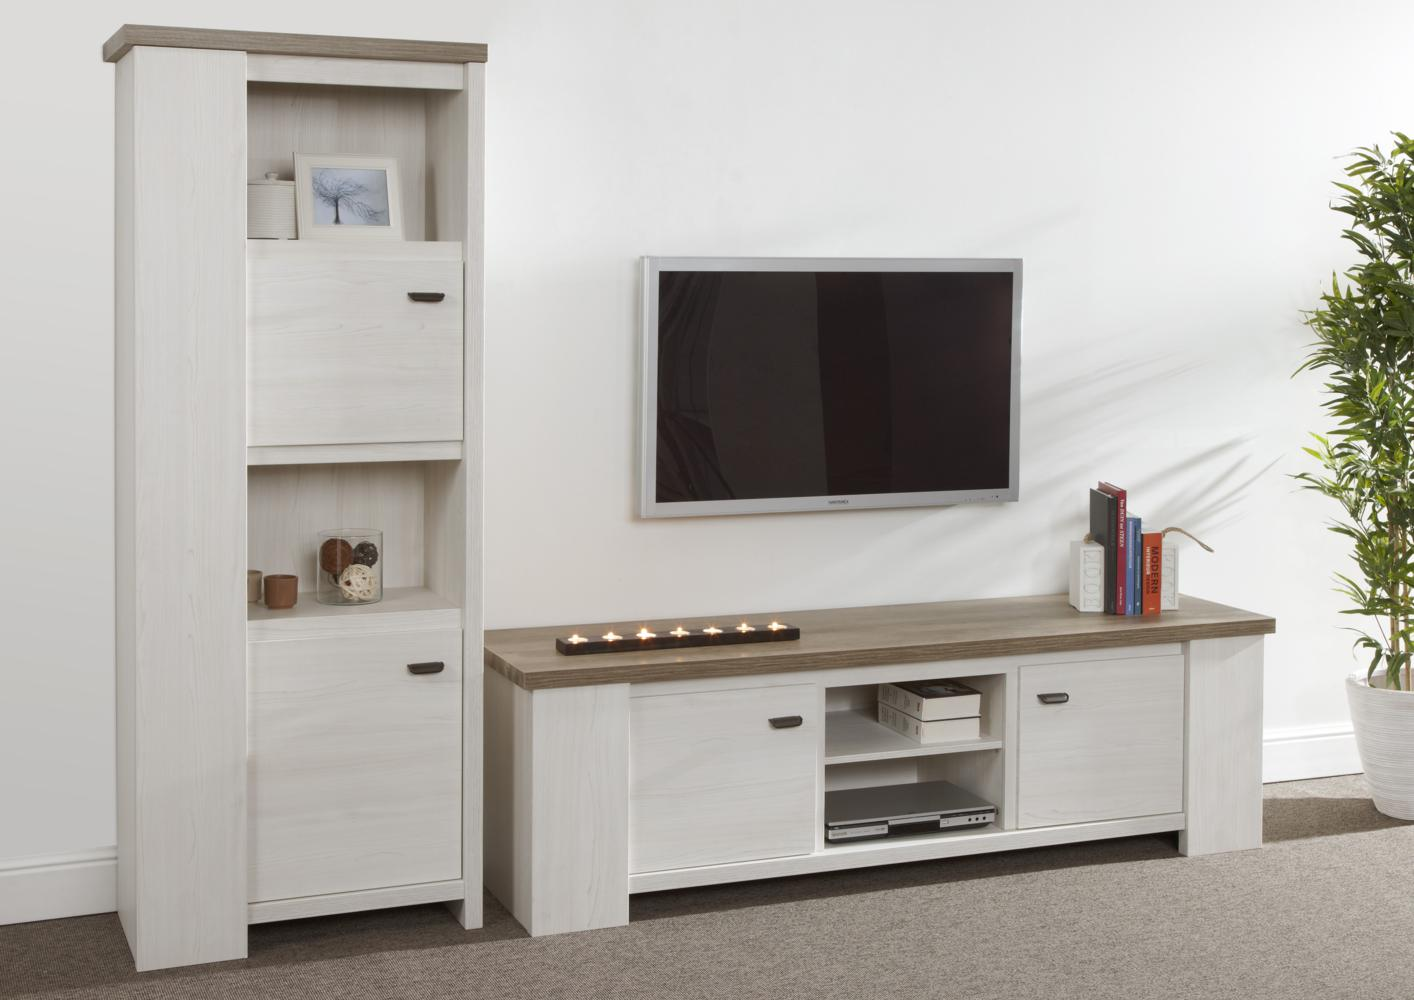 acheter votre meuble tv grand modele bicolor moderne chez simeuble. Black Bedroom Furniture Sets. Home Design Ideas